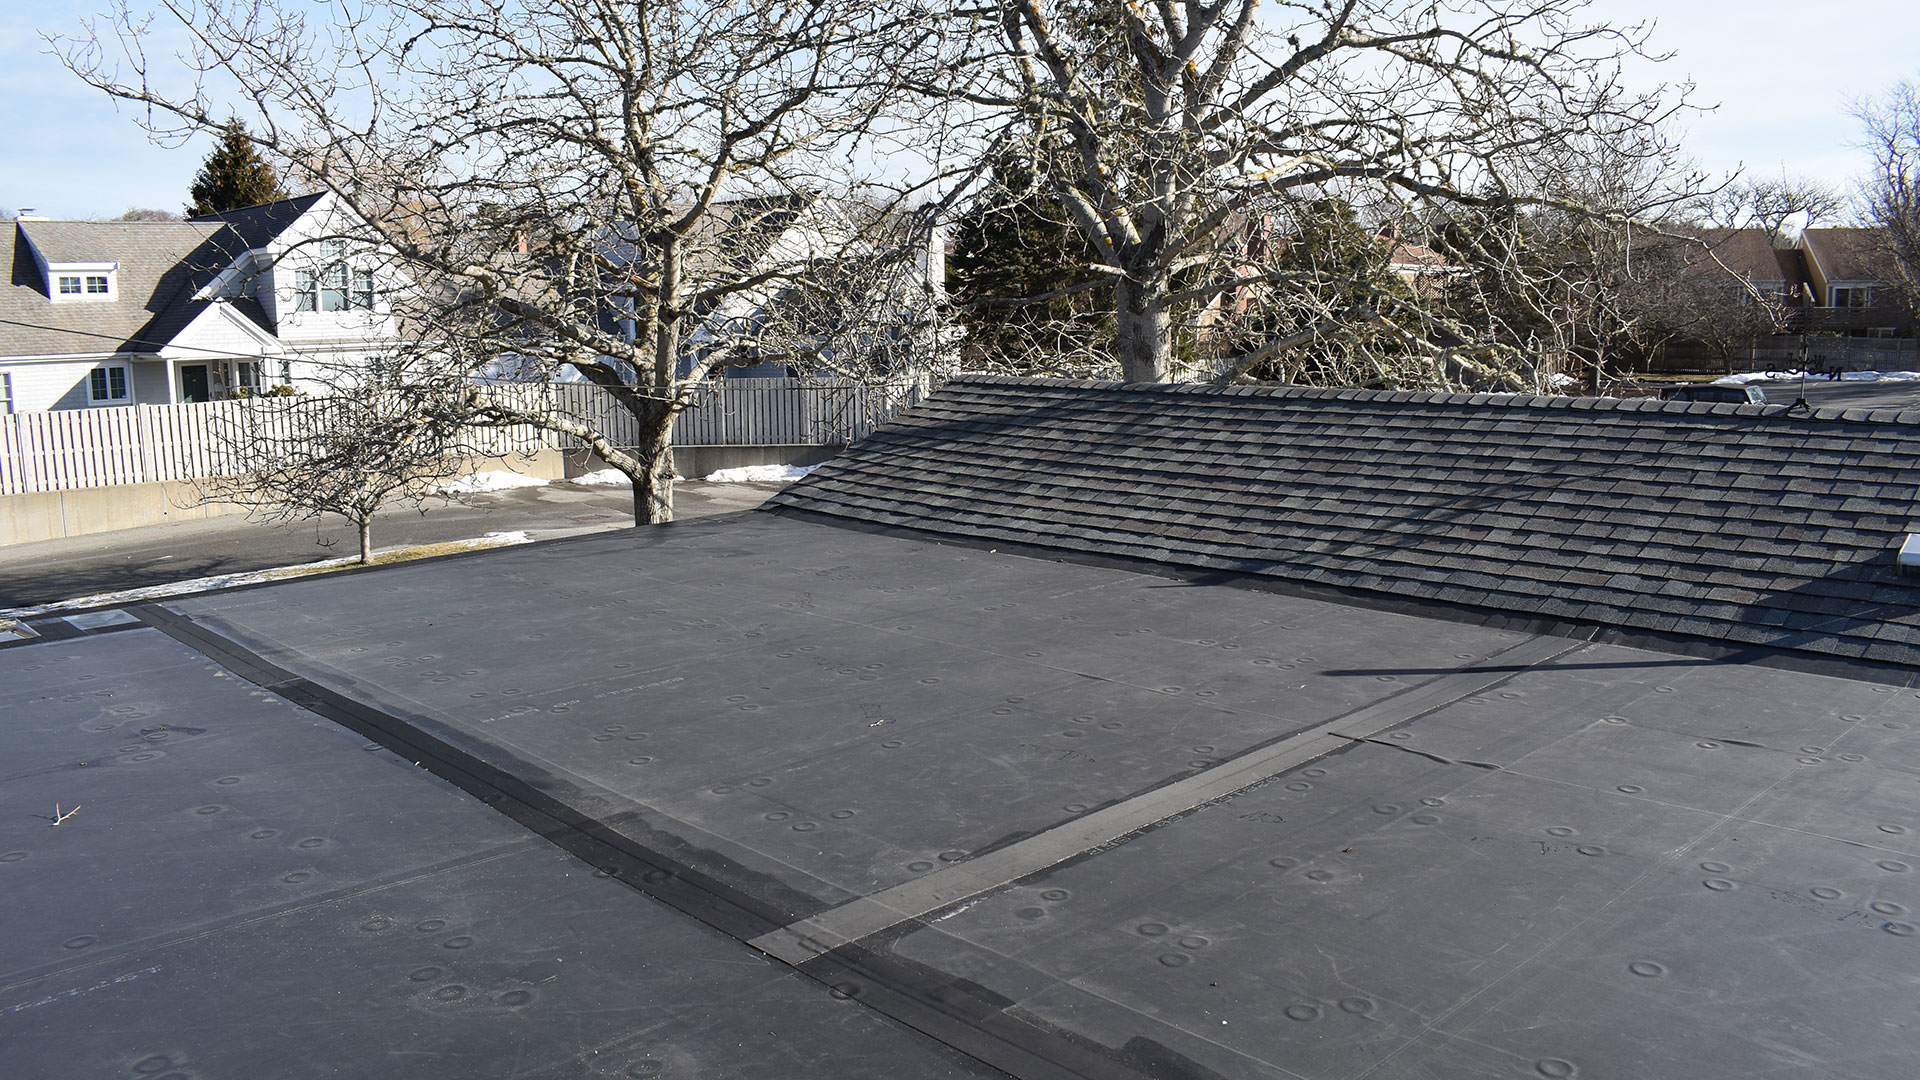 What Are The Different Ways To Choose The Best Roofing Companies?